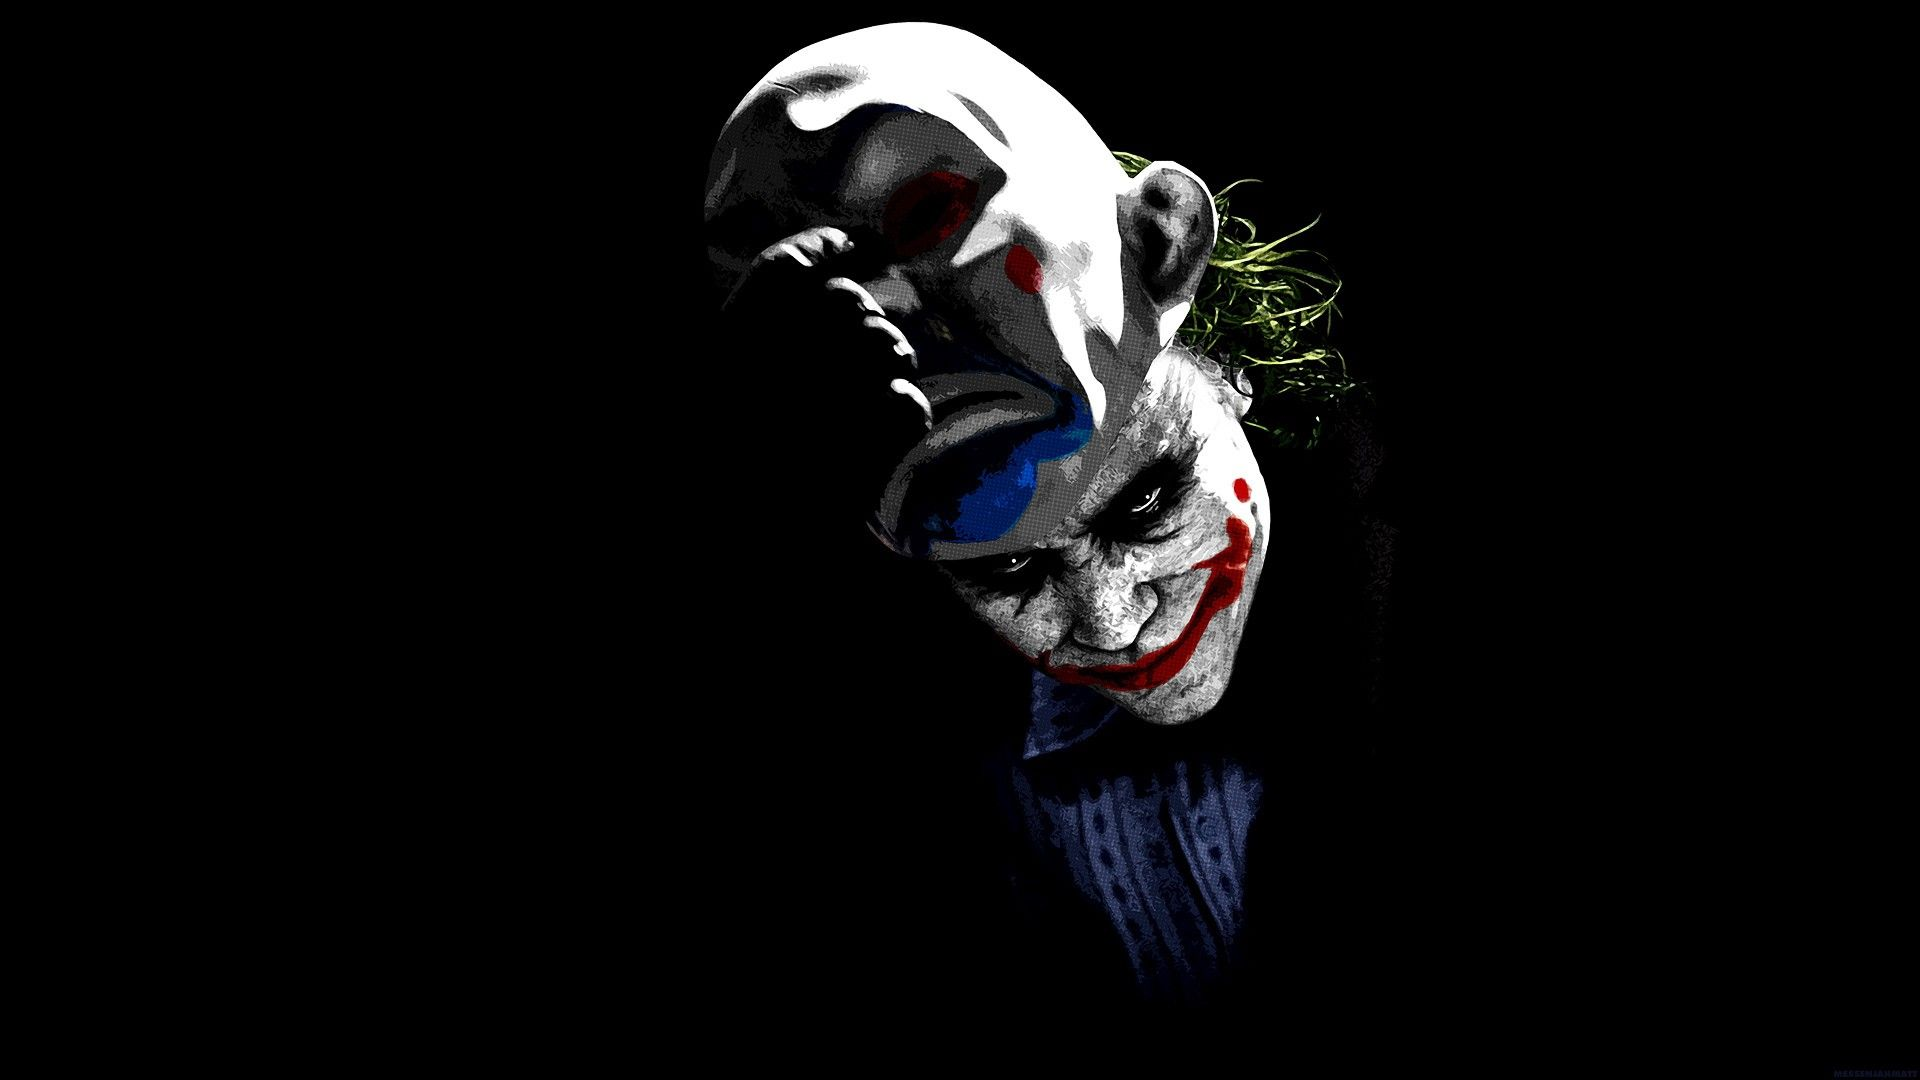 Double Face Live Wallpaper Android Apps On Google Play Joker